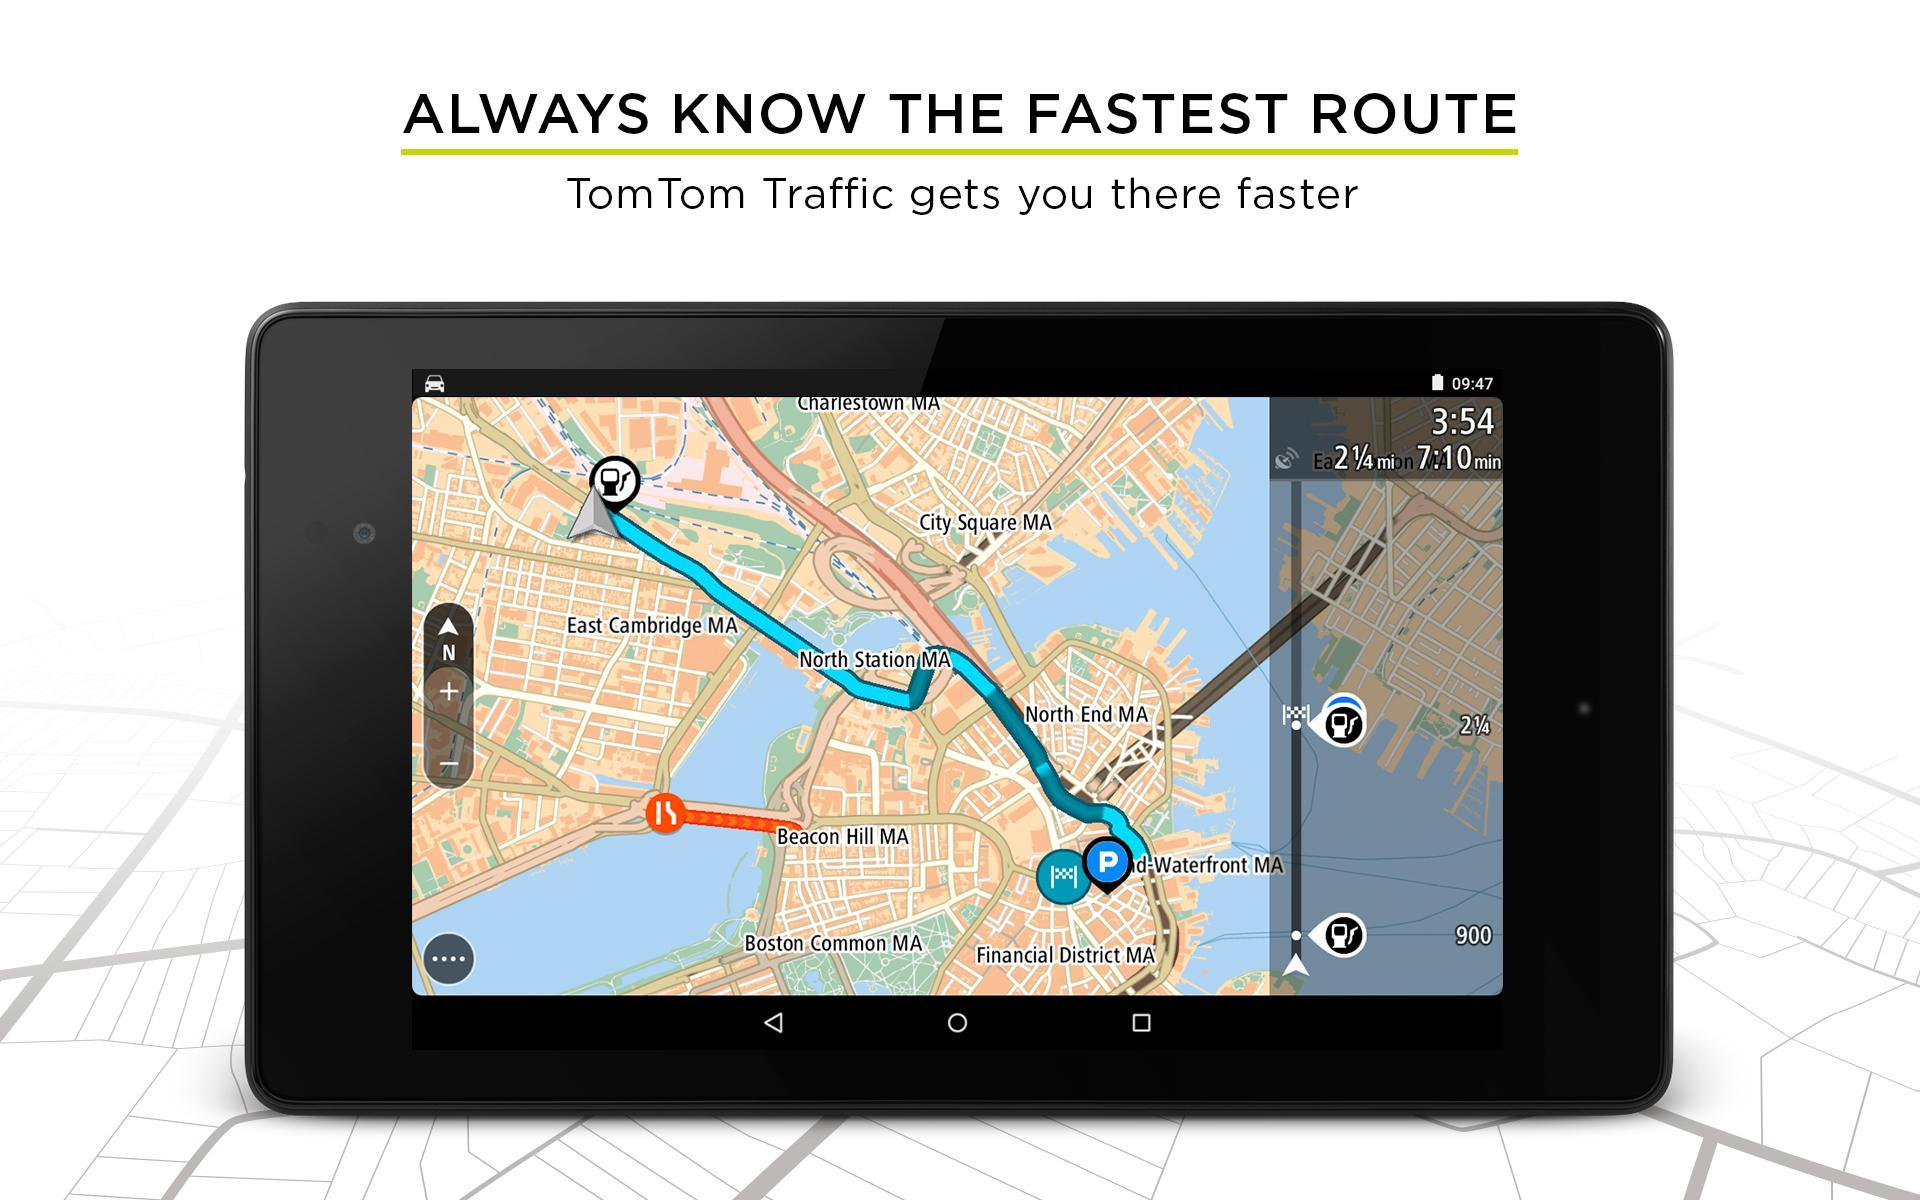 TomTom GPS Navigation - Live Traffic Alerts & Maps 2.0.4 Screenshot 15